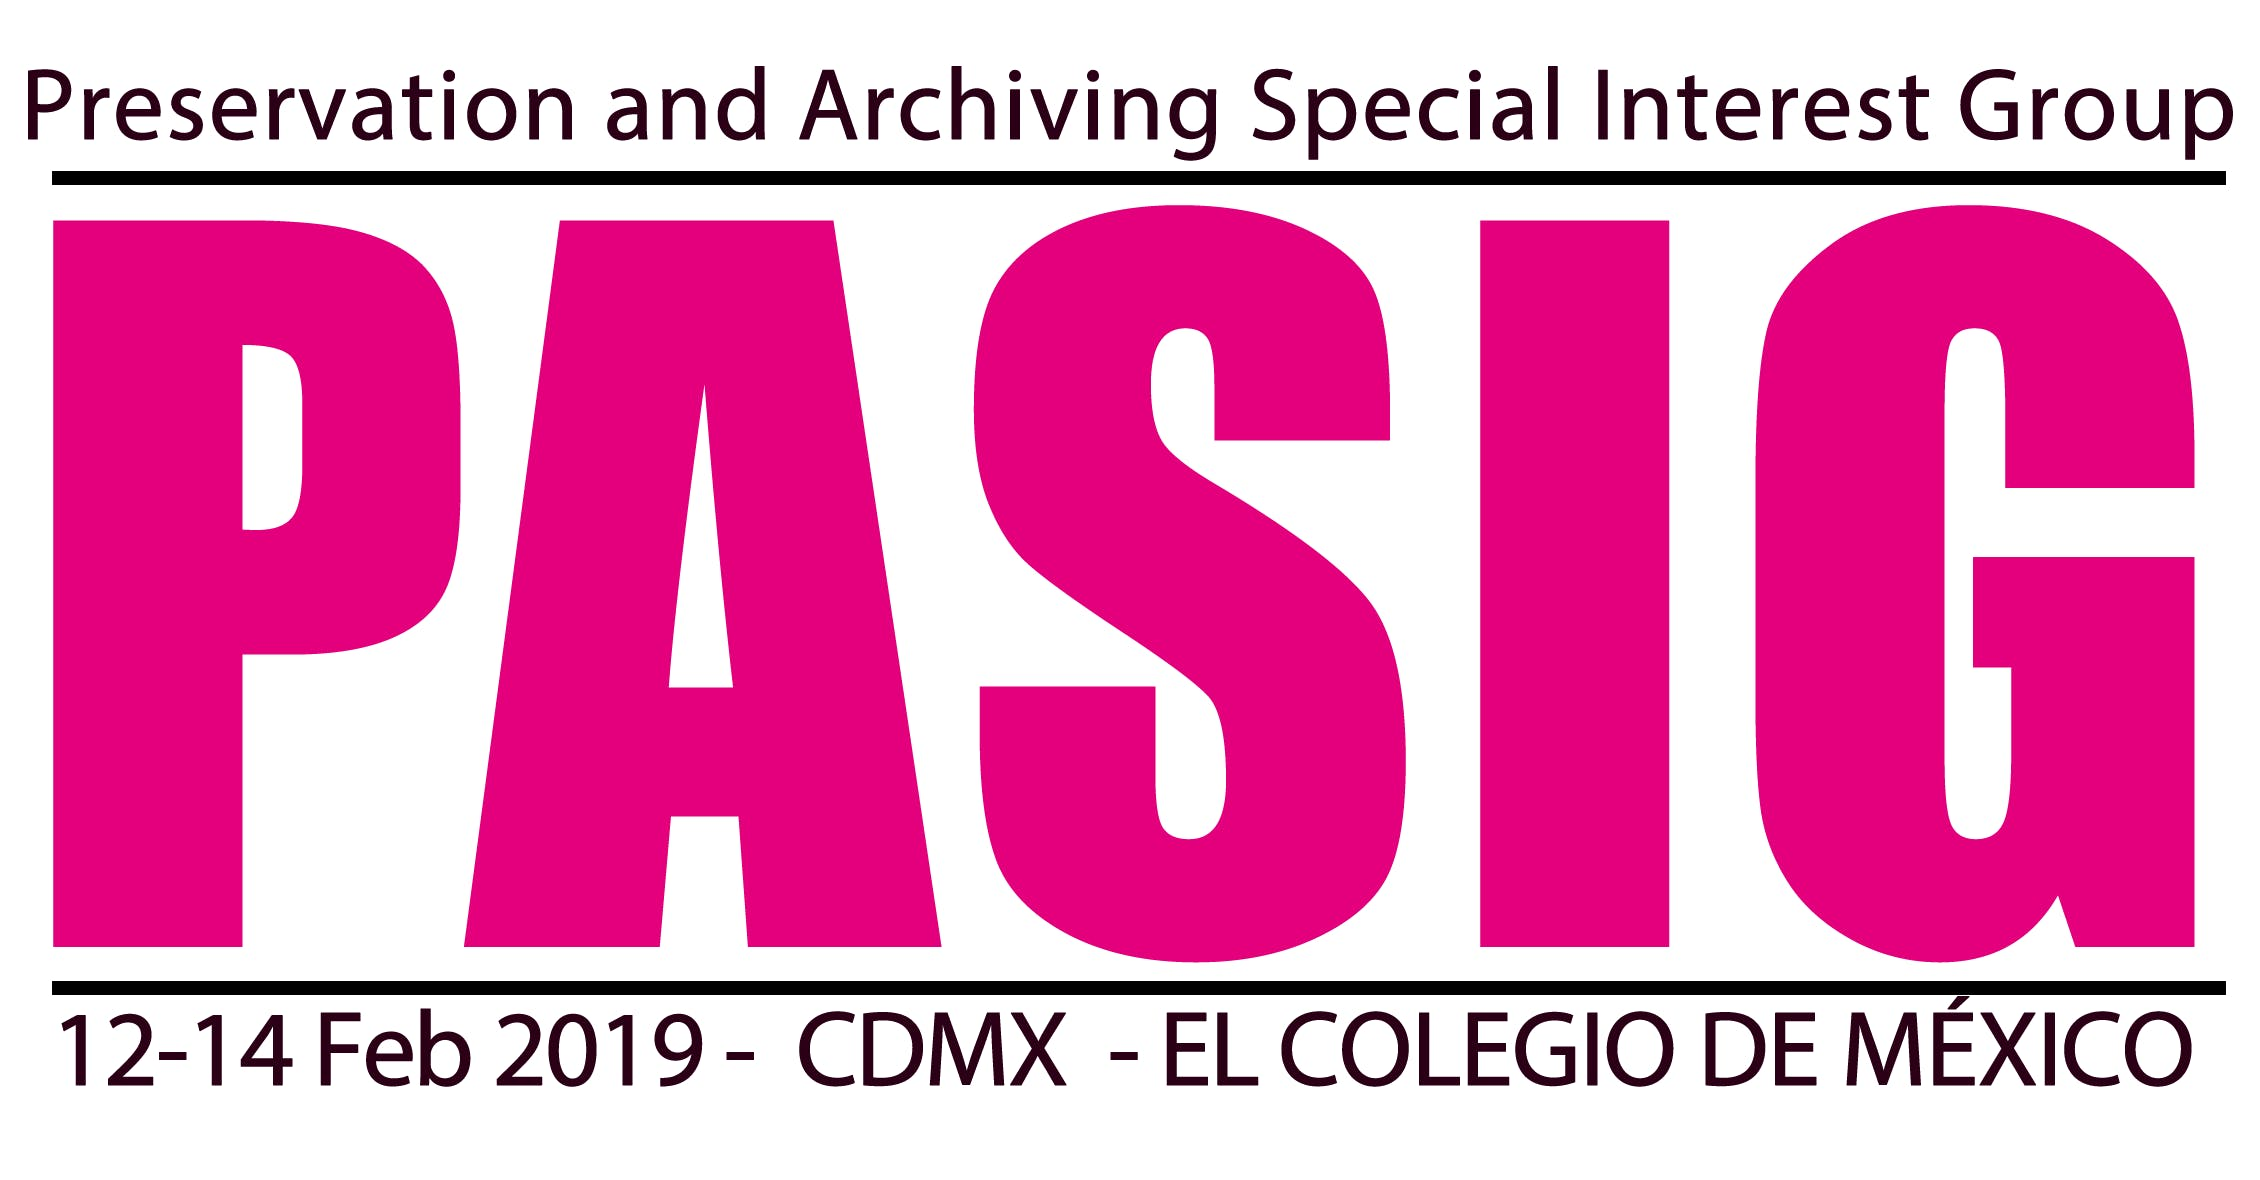 Preservation and Archiving Special Interest Group (PASIG) 2019